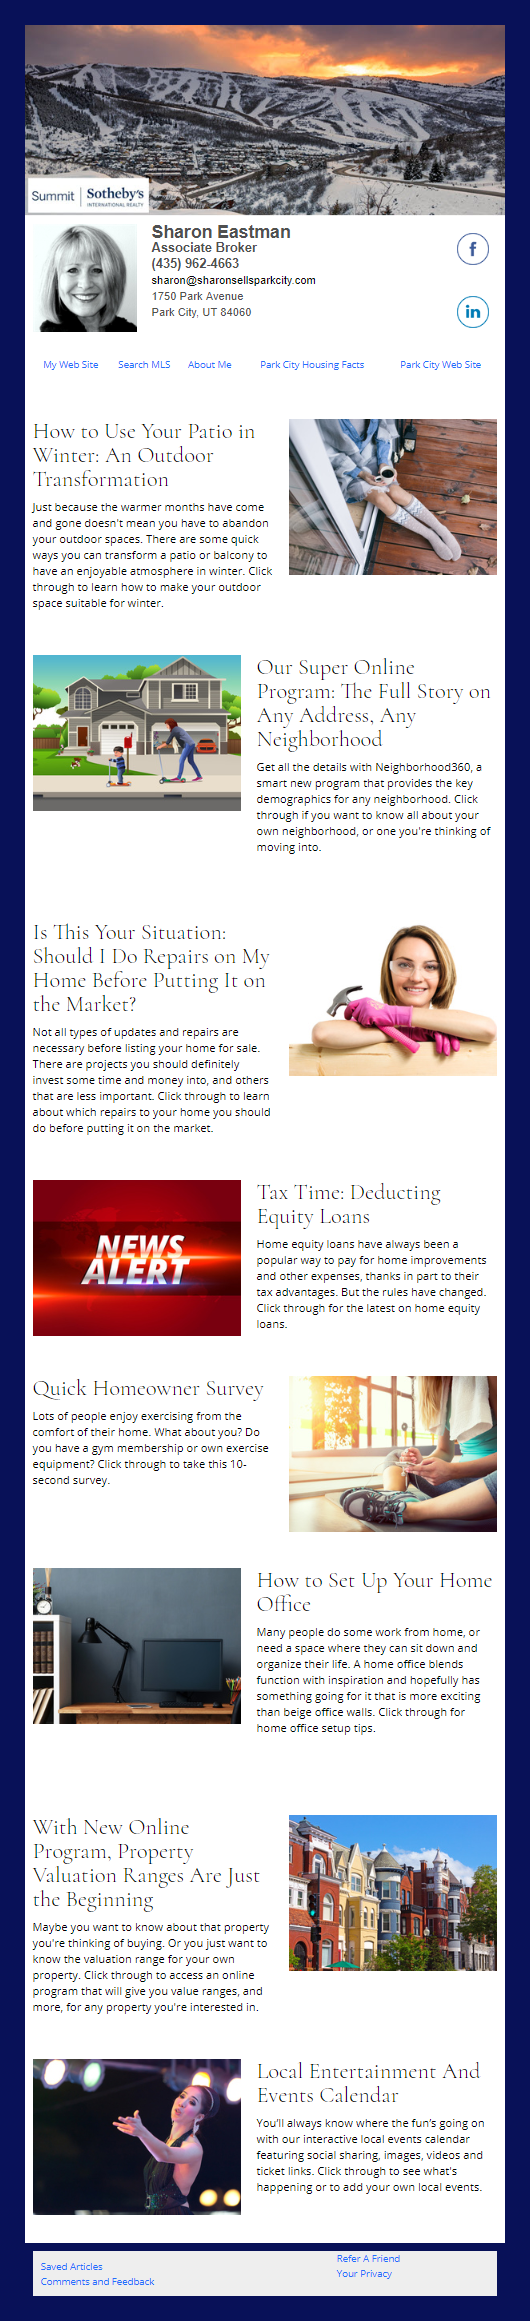 Sotheby's - HomeActions Sample Email Newsletter